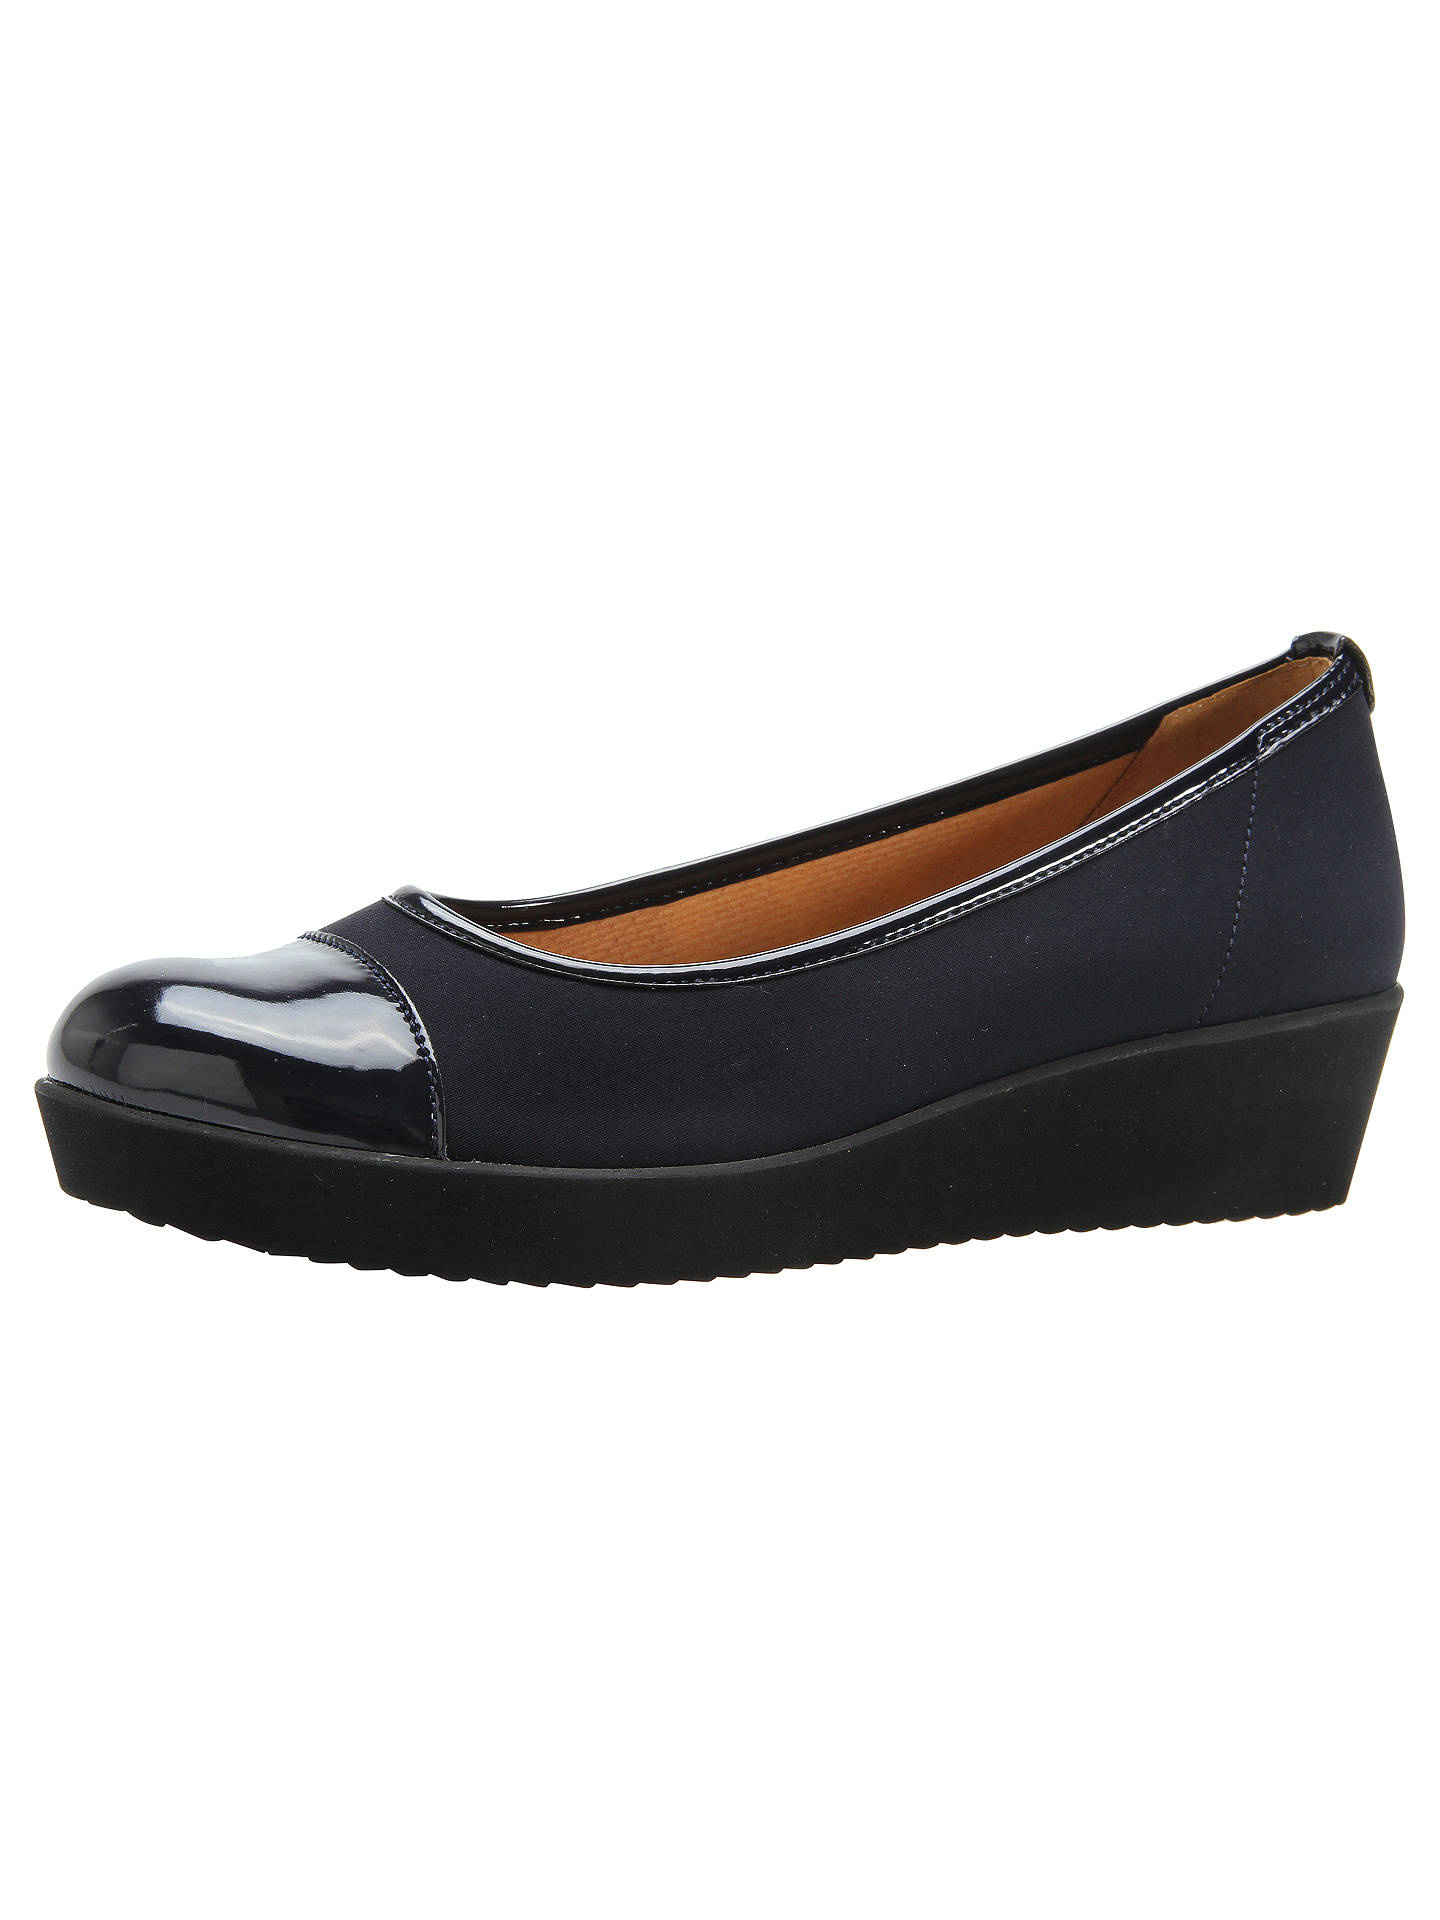 usa cheap sale classic styles lower price with Gabor Orient Pump Shoes, Ocean at John Lewis & Partners